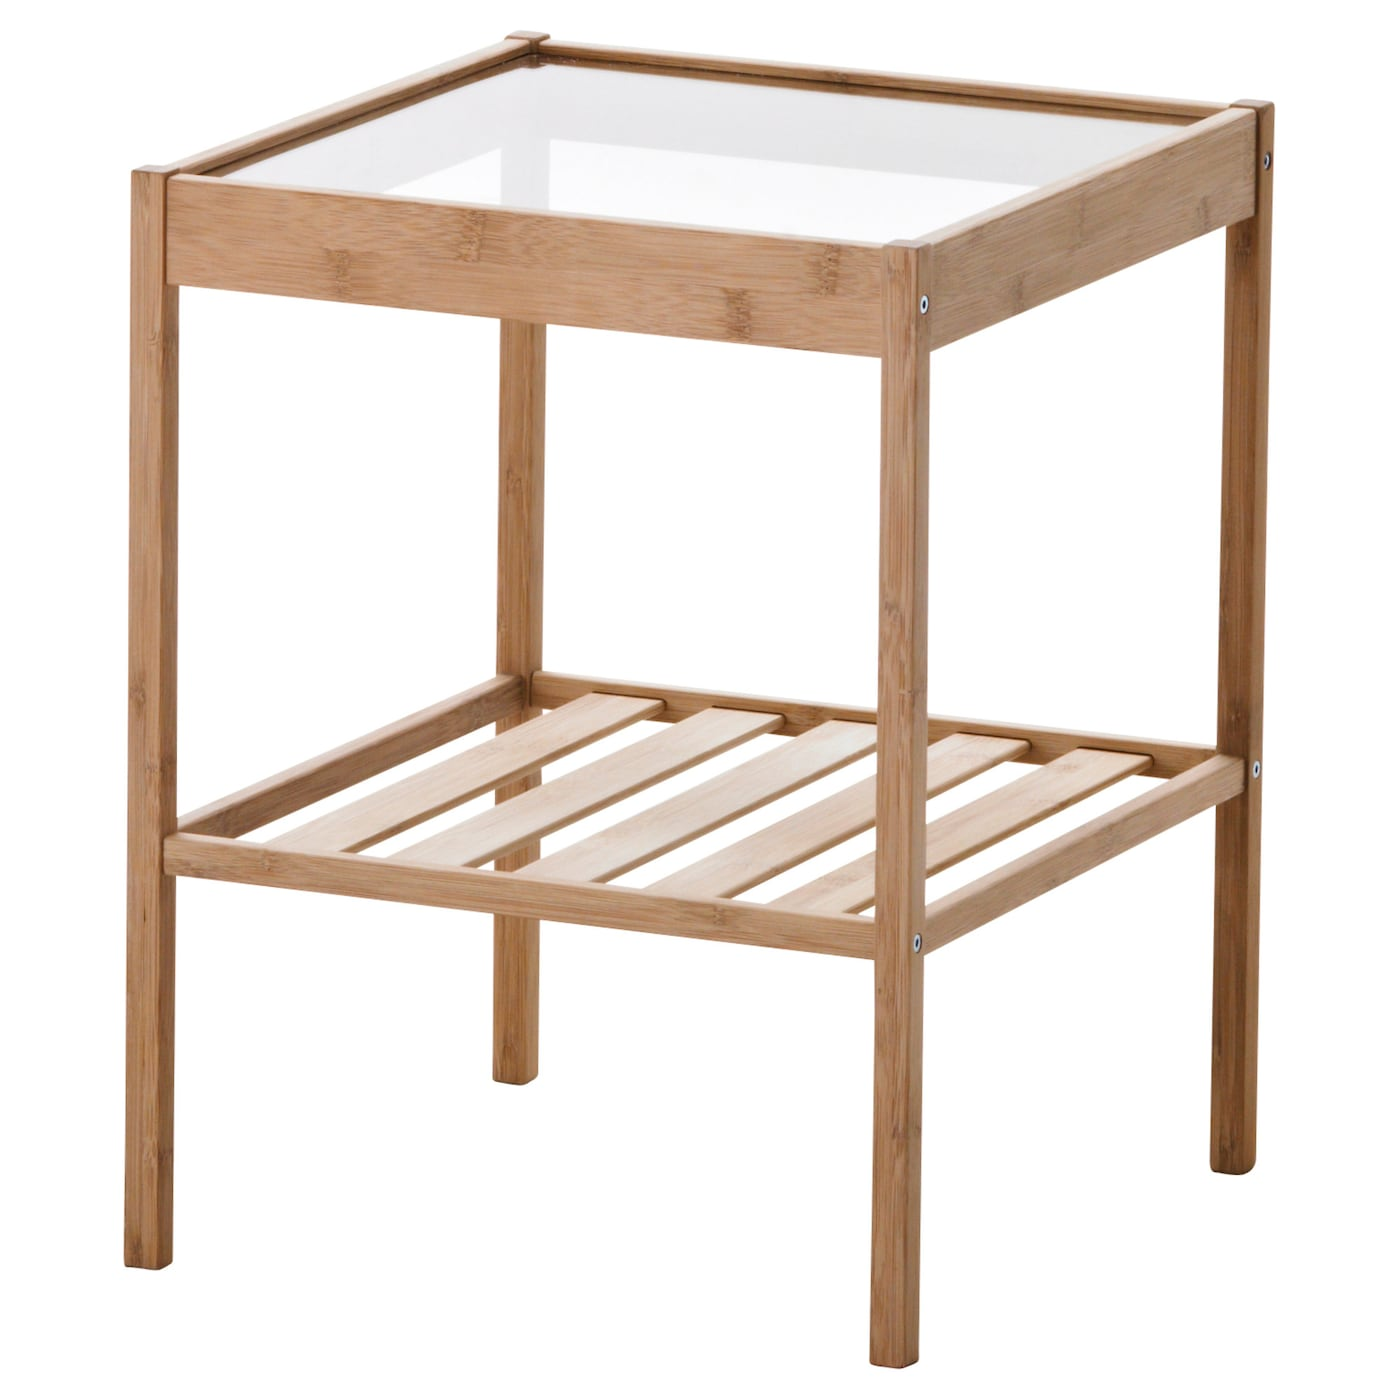 Nesna bedside table 36x35 cm ikea for Table th collapse